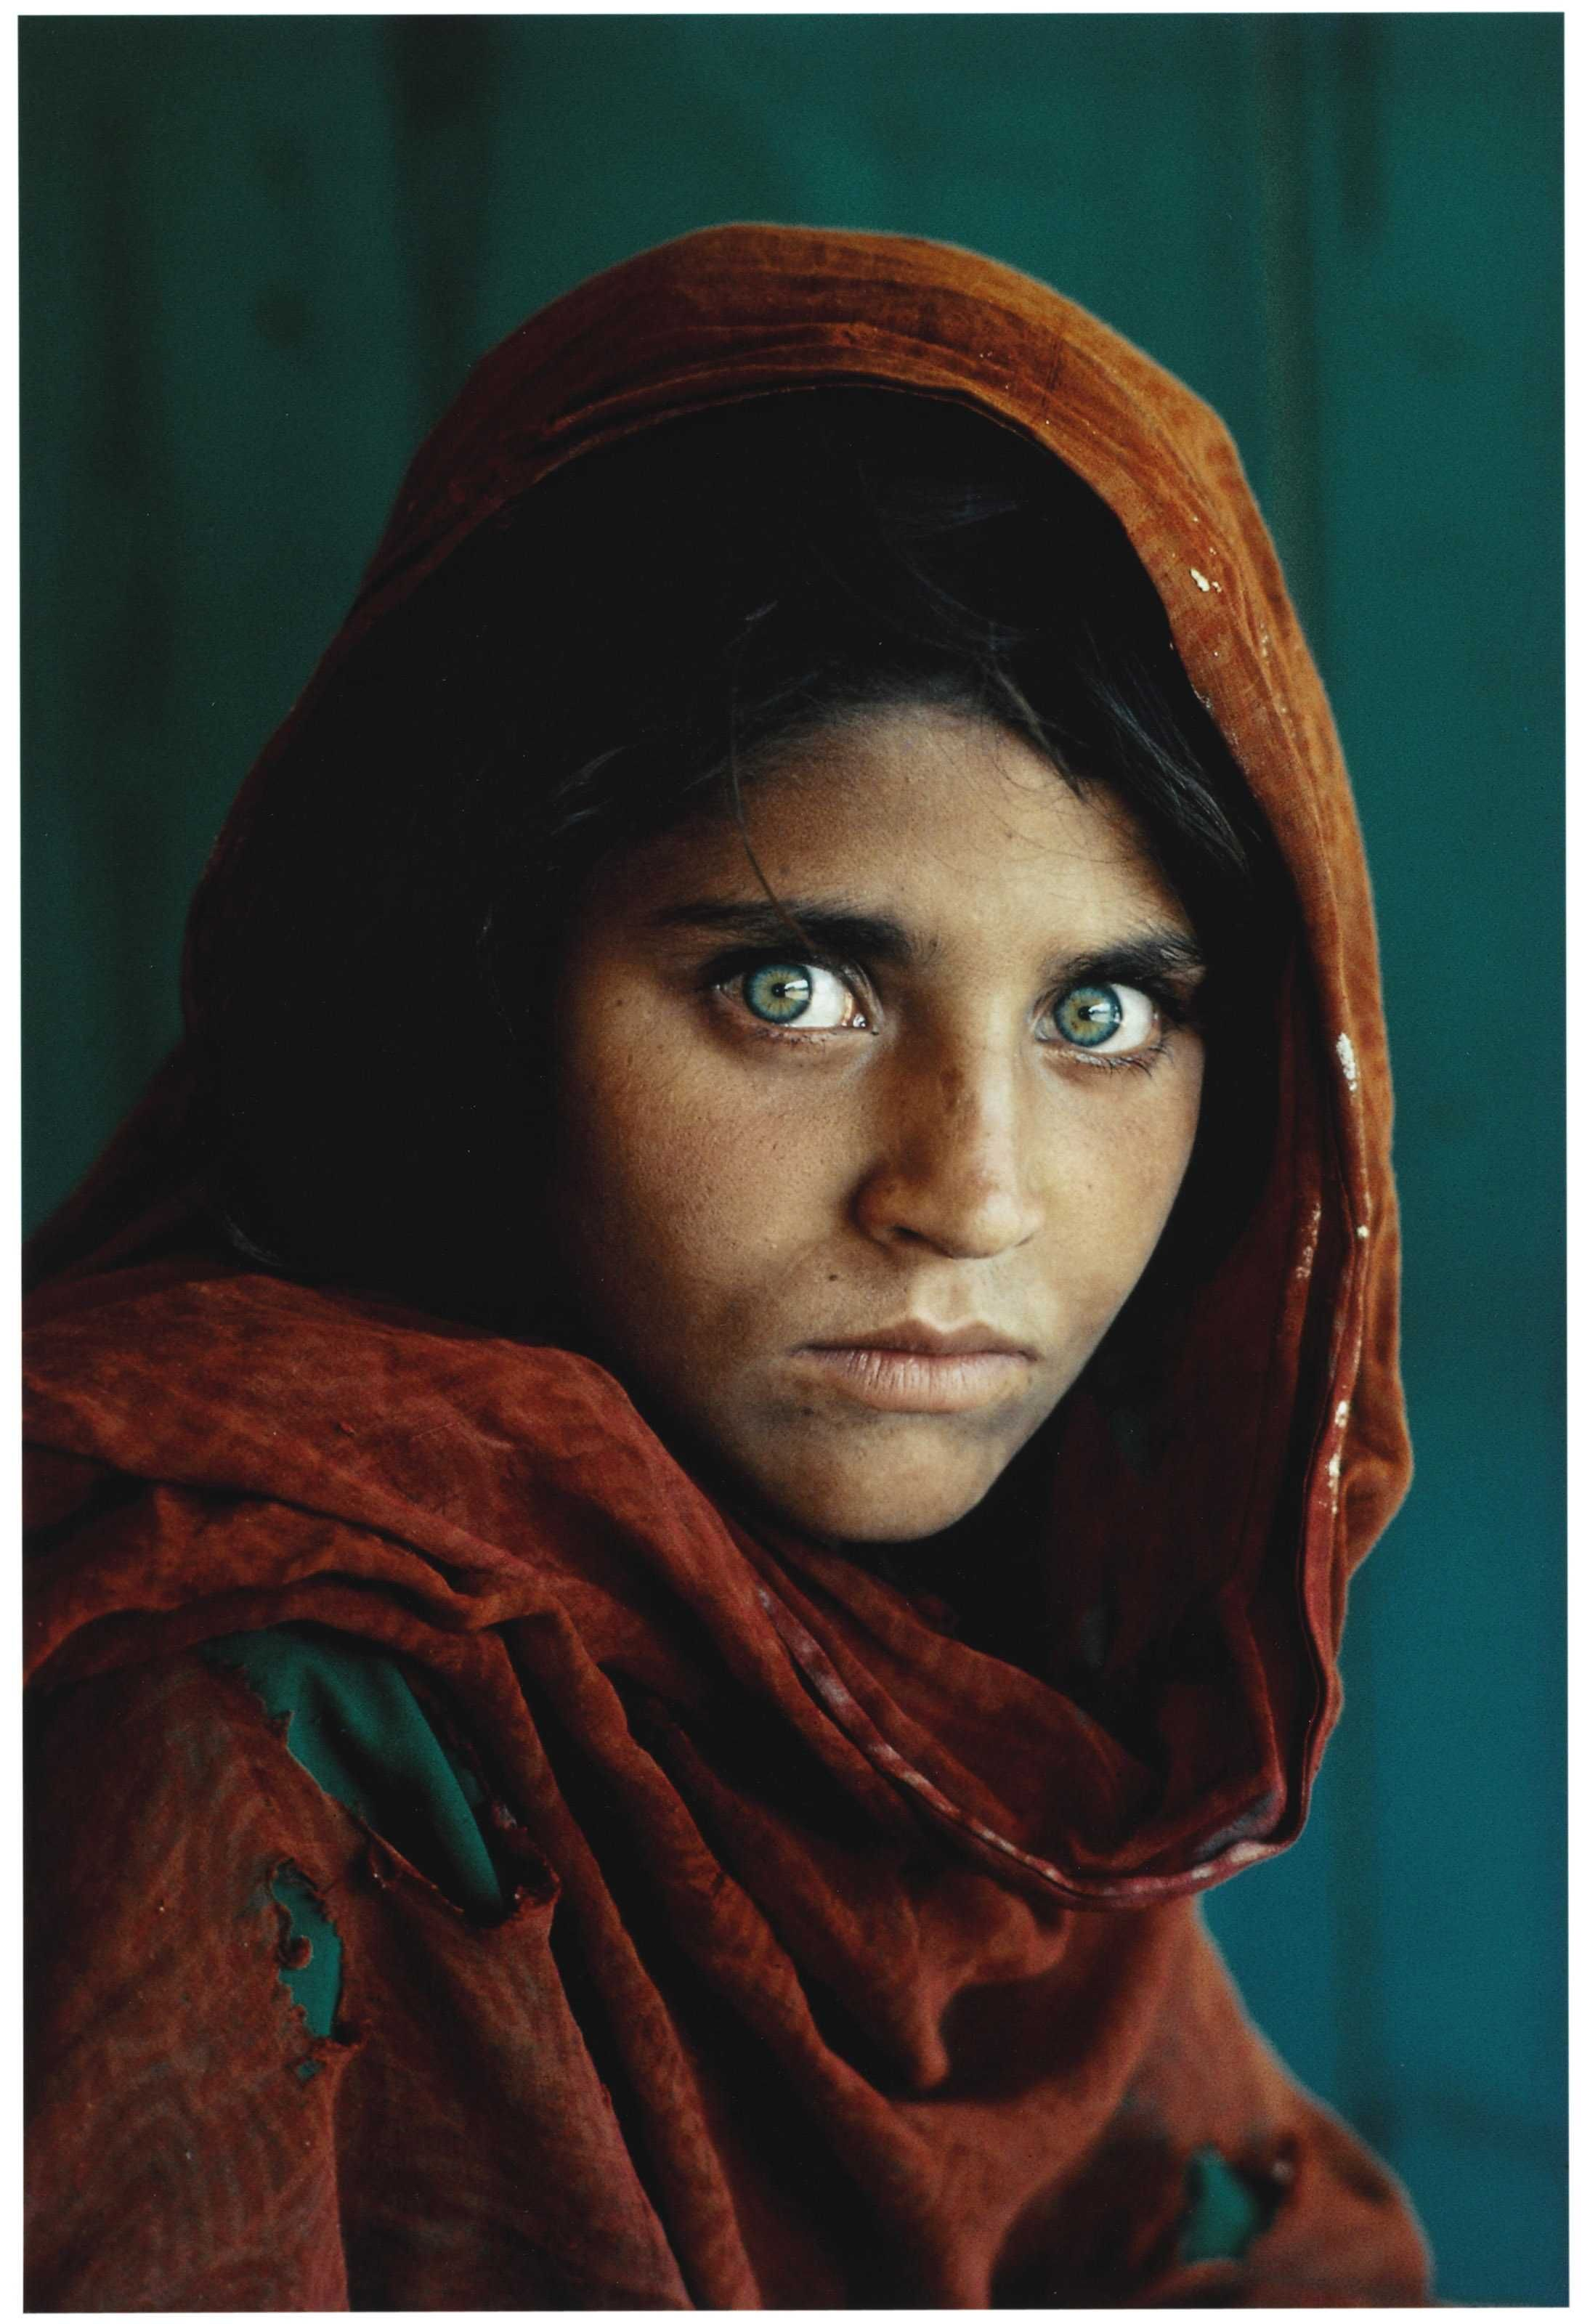 Iconic: The Afghan Girl by Steve McCurry (1984)